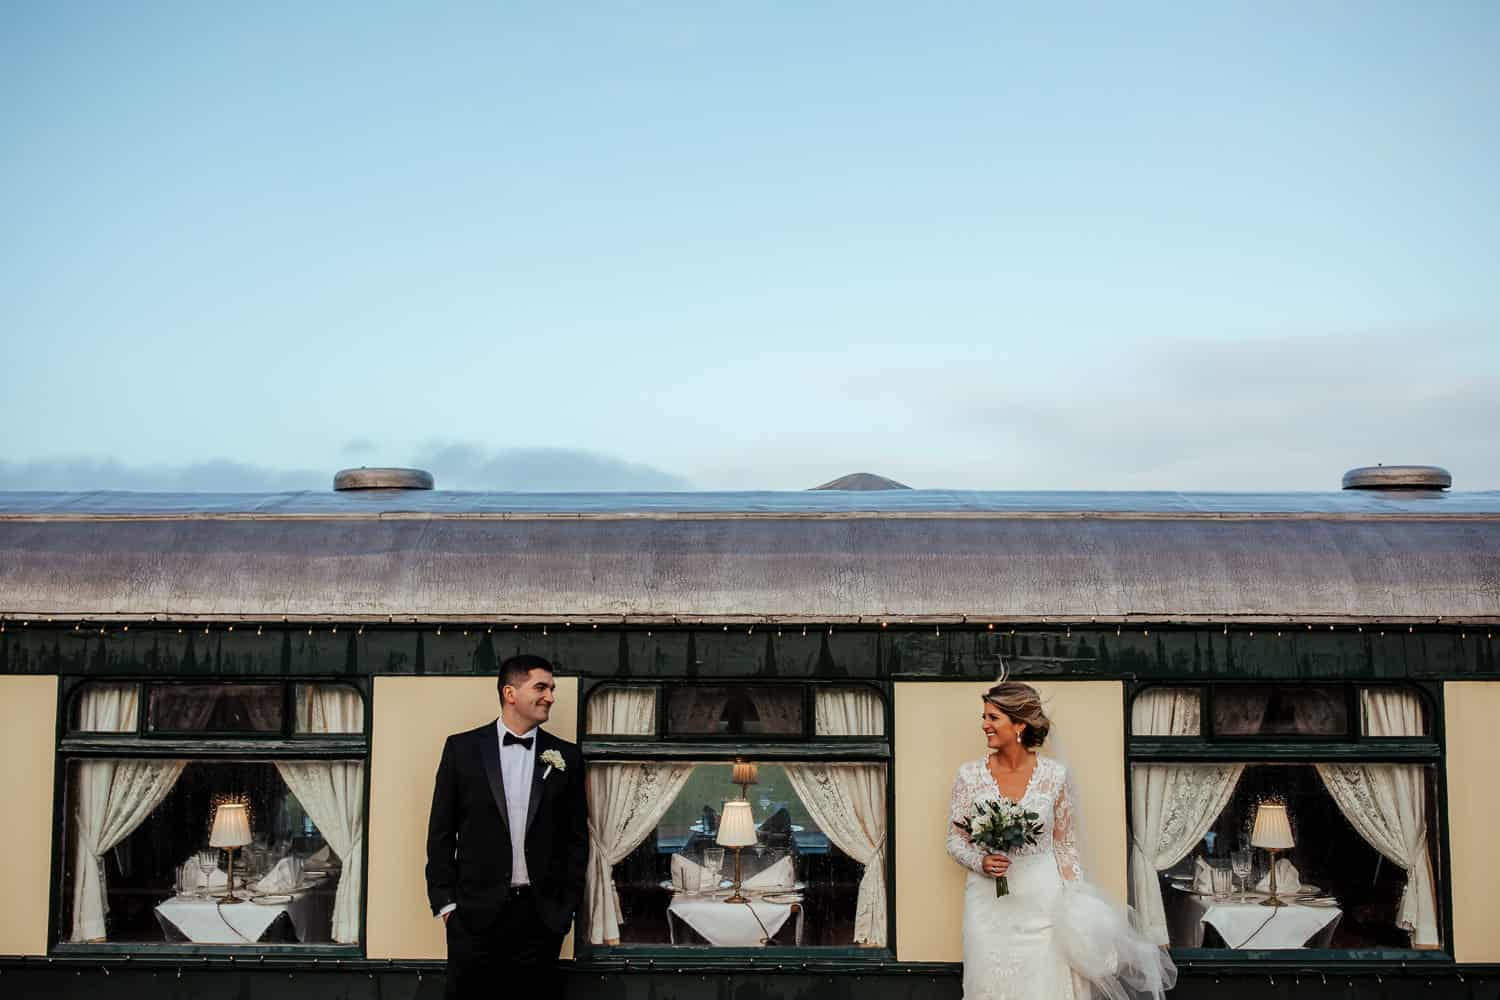 bride and groom at pullman train glenlo abbey wedding